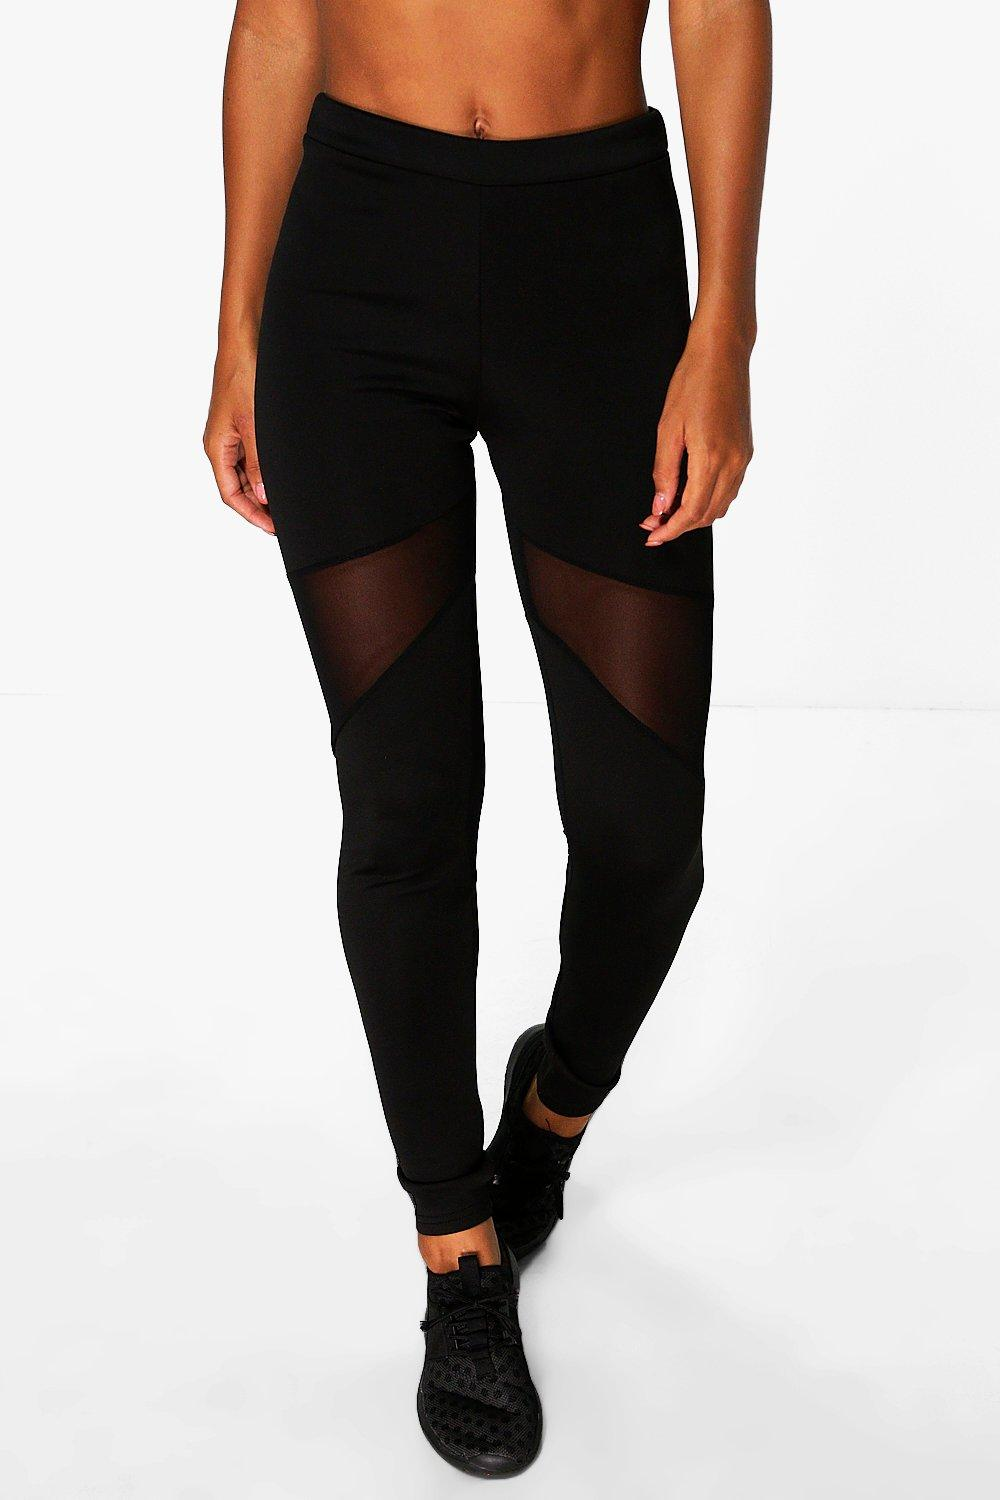 Emma Fit Mesh Panel Sports Running Legging at boohoo.com